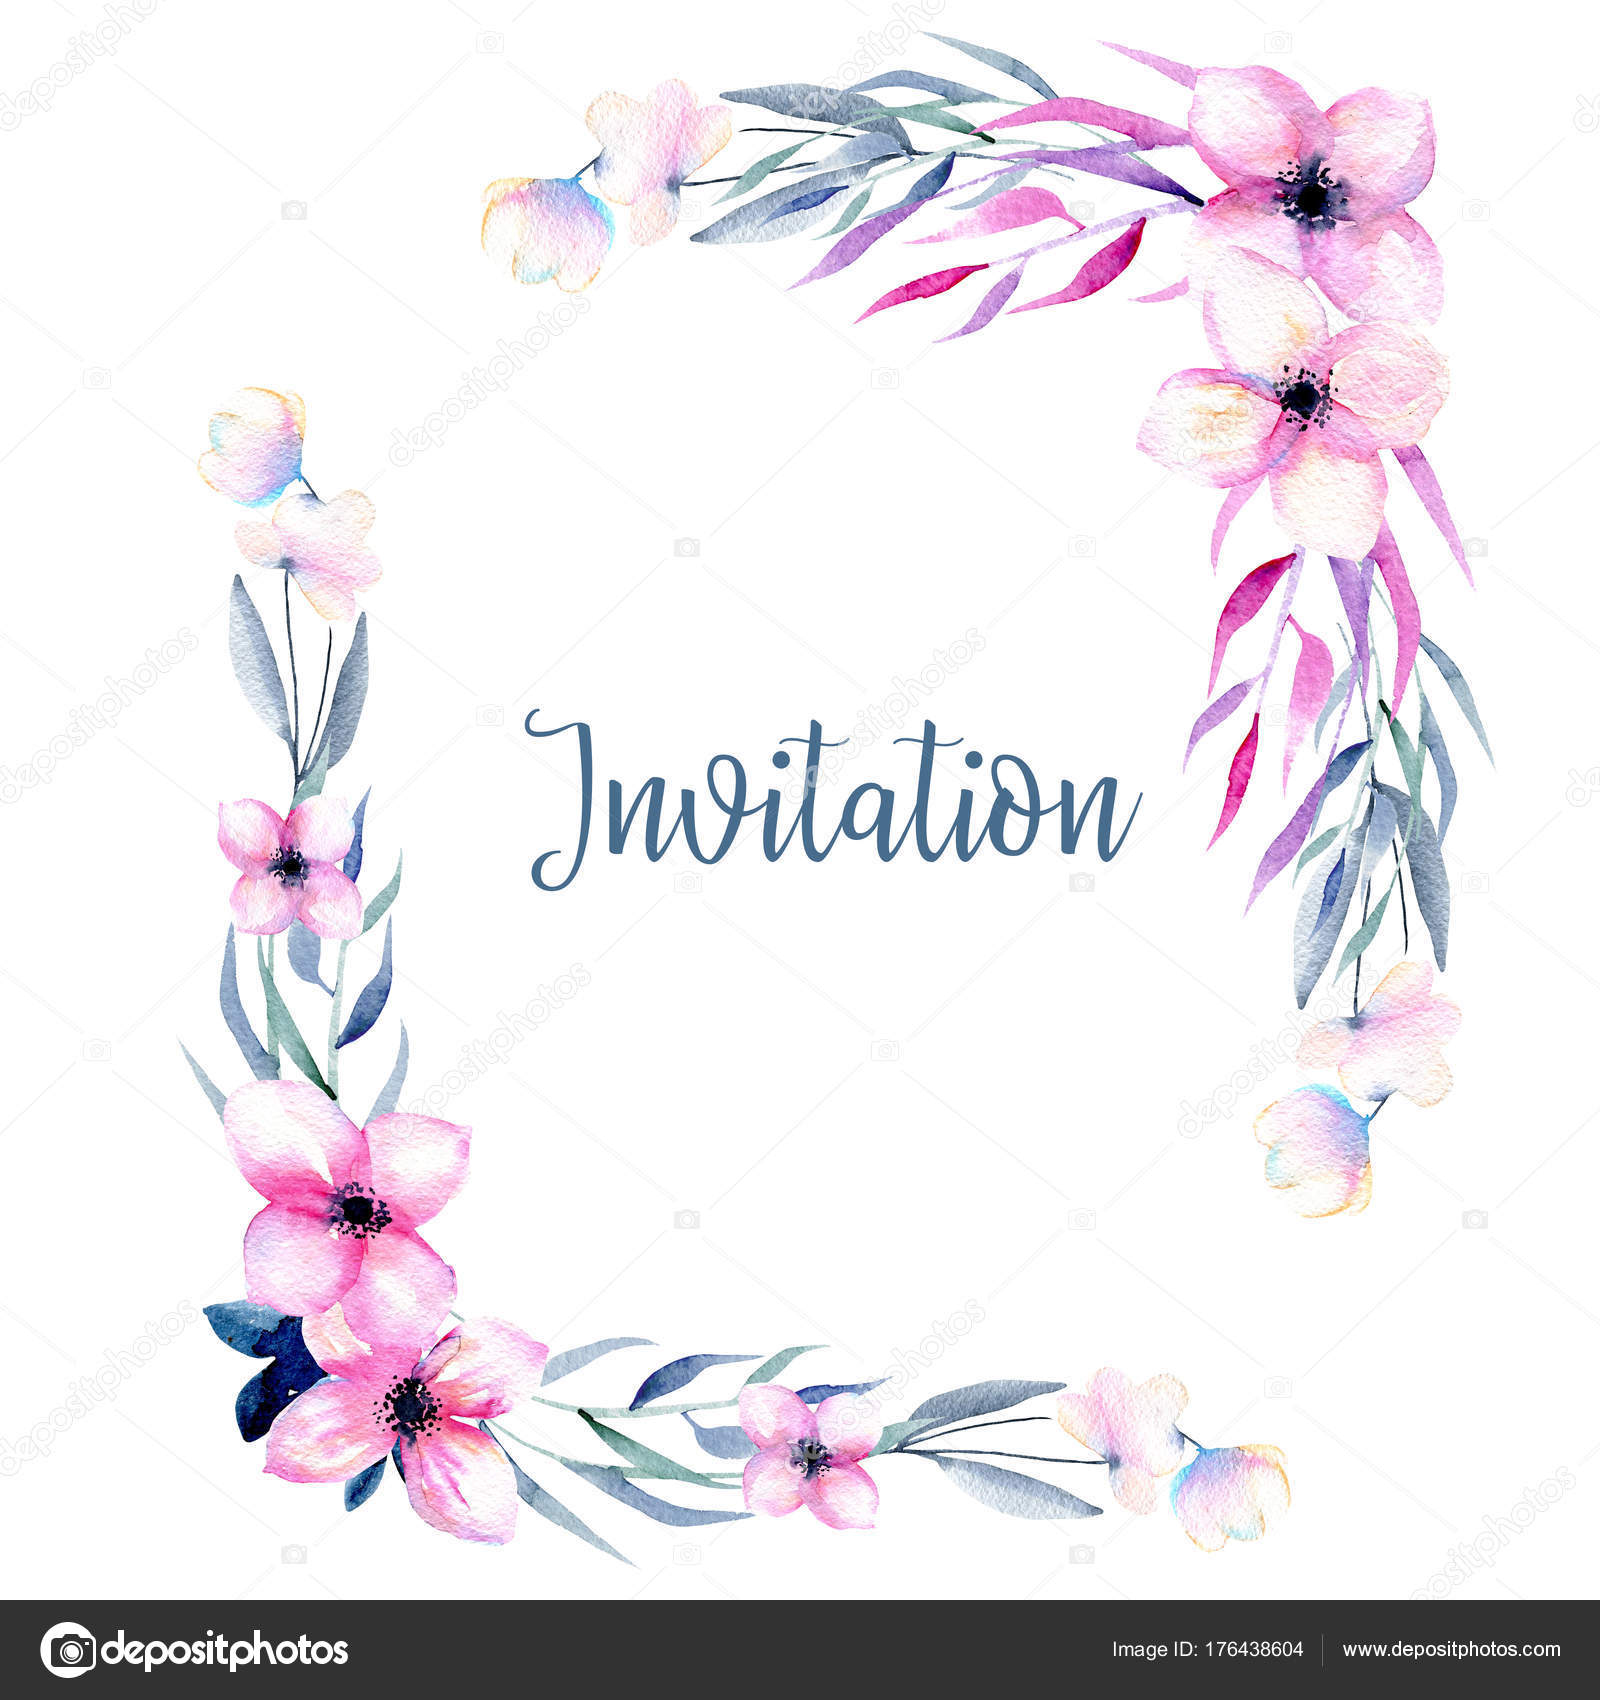 Watercolor Wildflowers Branches Corner Borders Pink Blue Shades Hand Drawn Stock Photo